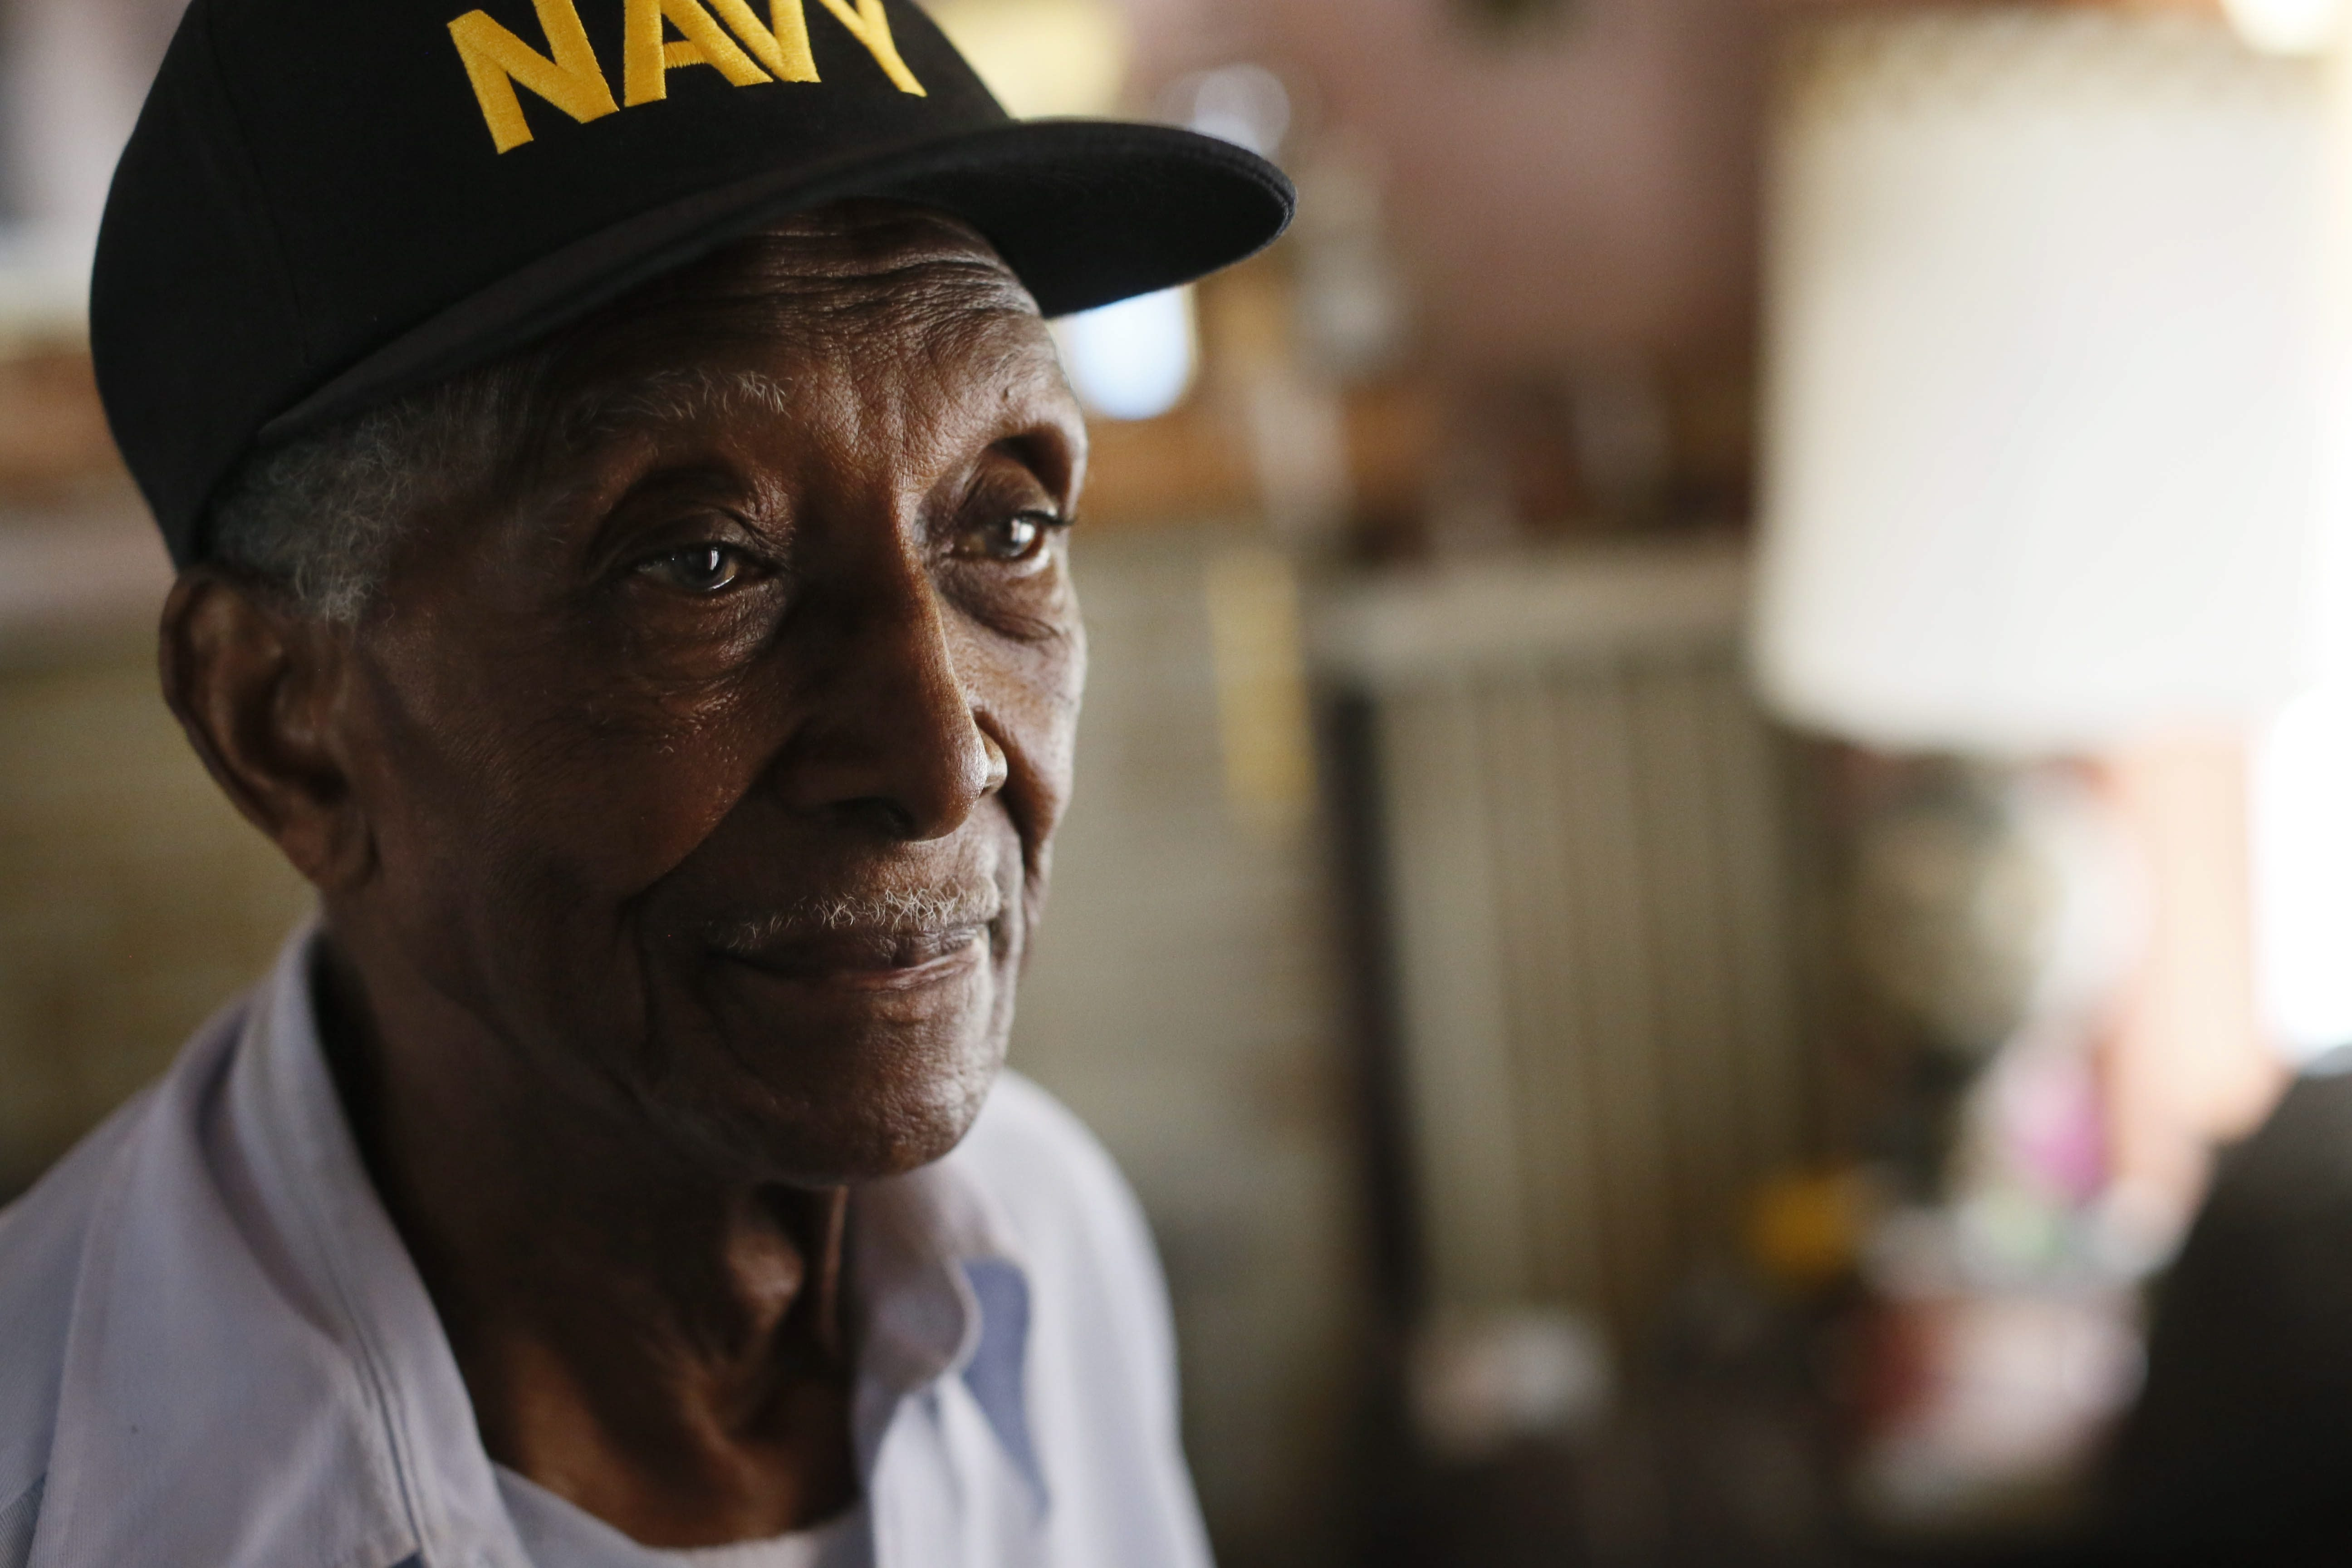 Johnnie H. Hodges Sr., a 90-year-old Navy veteran of World War II, received notice from M&T Bank Thursday that he must leave the house he has lived in for more than 60 years.